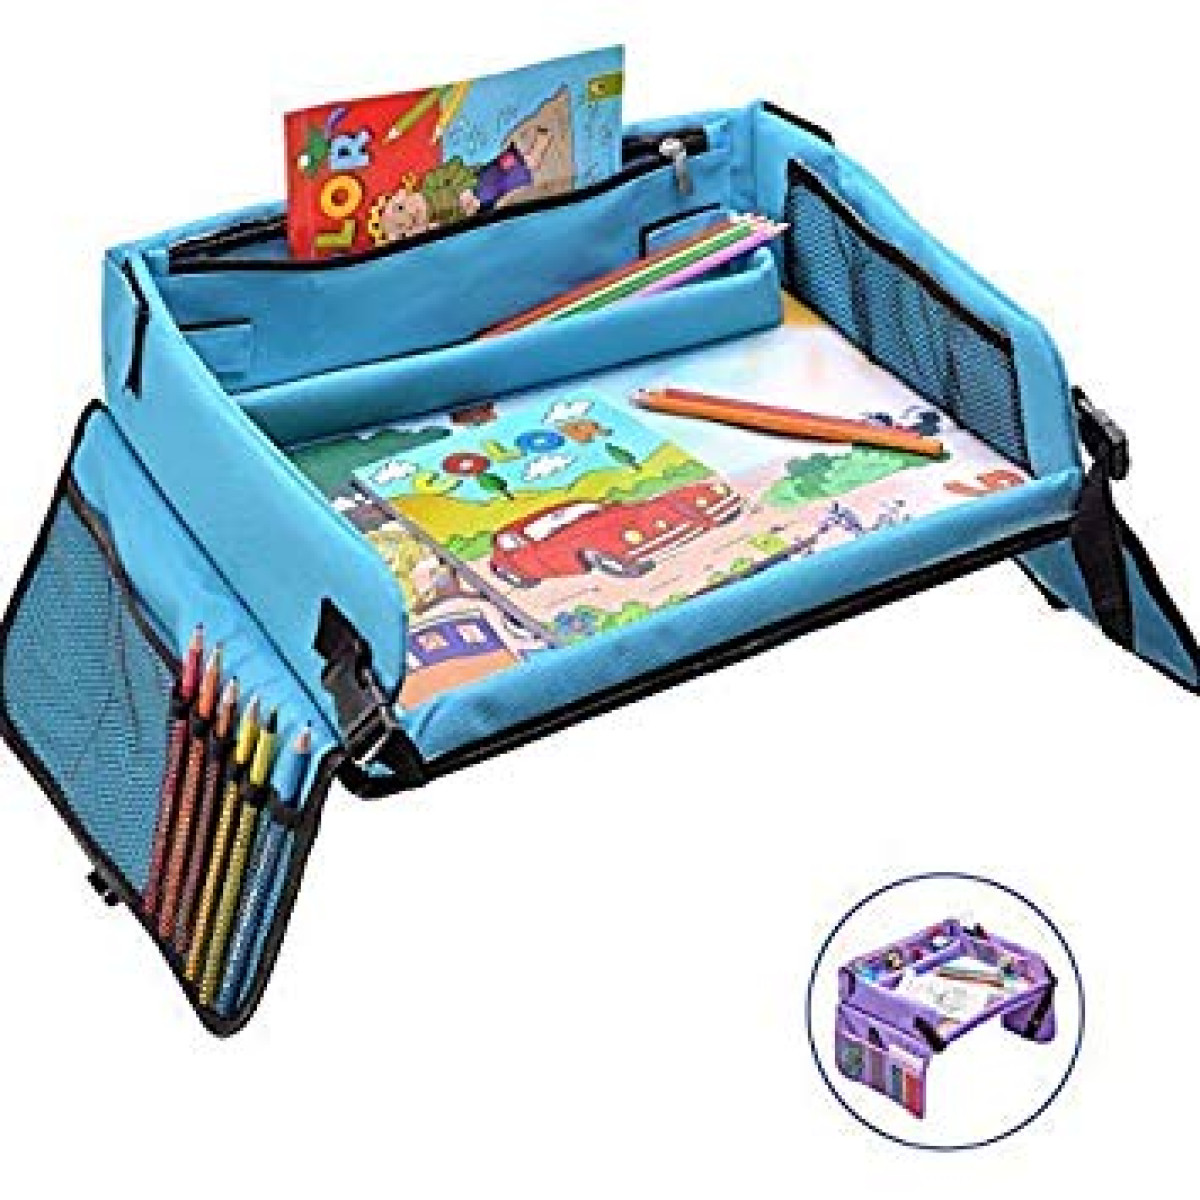 Activity Kids Travel Play Tray Snack Tray /& Organizer for Car Seat